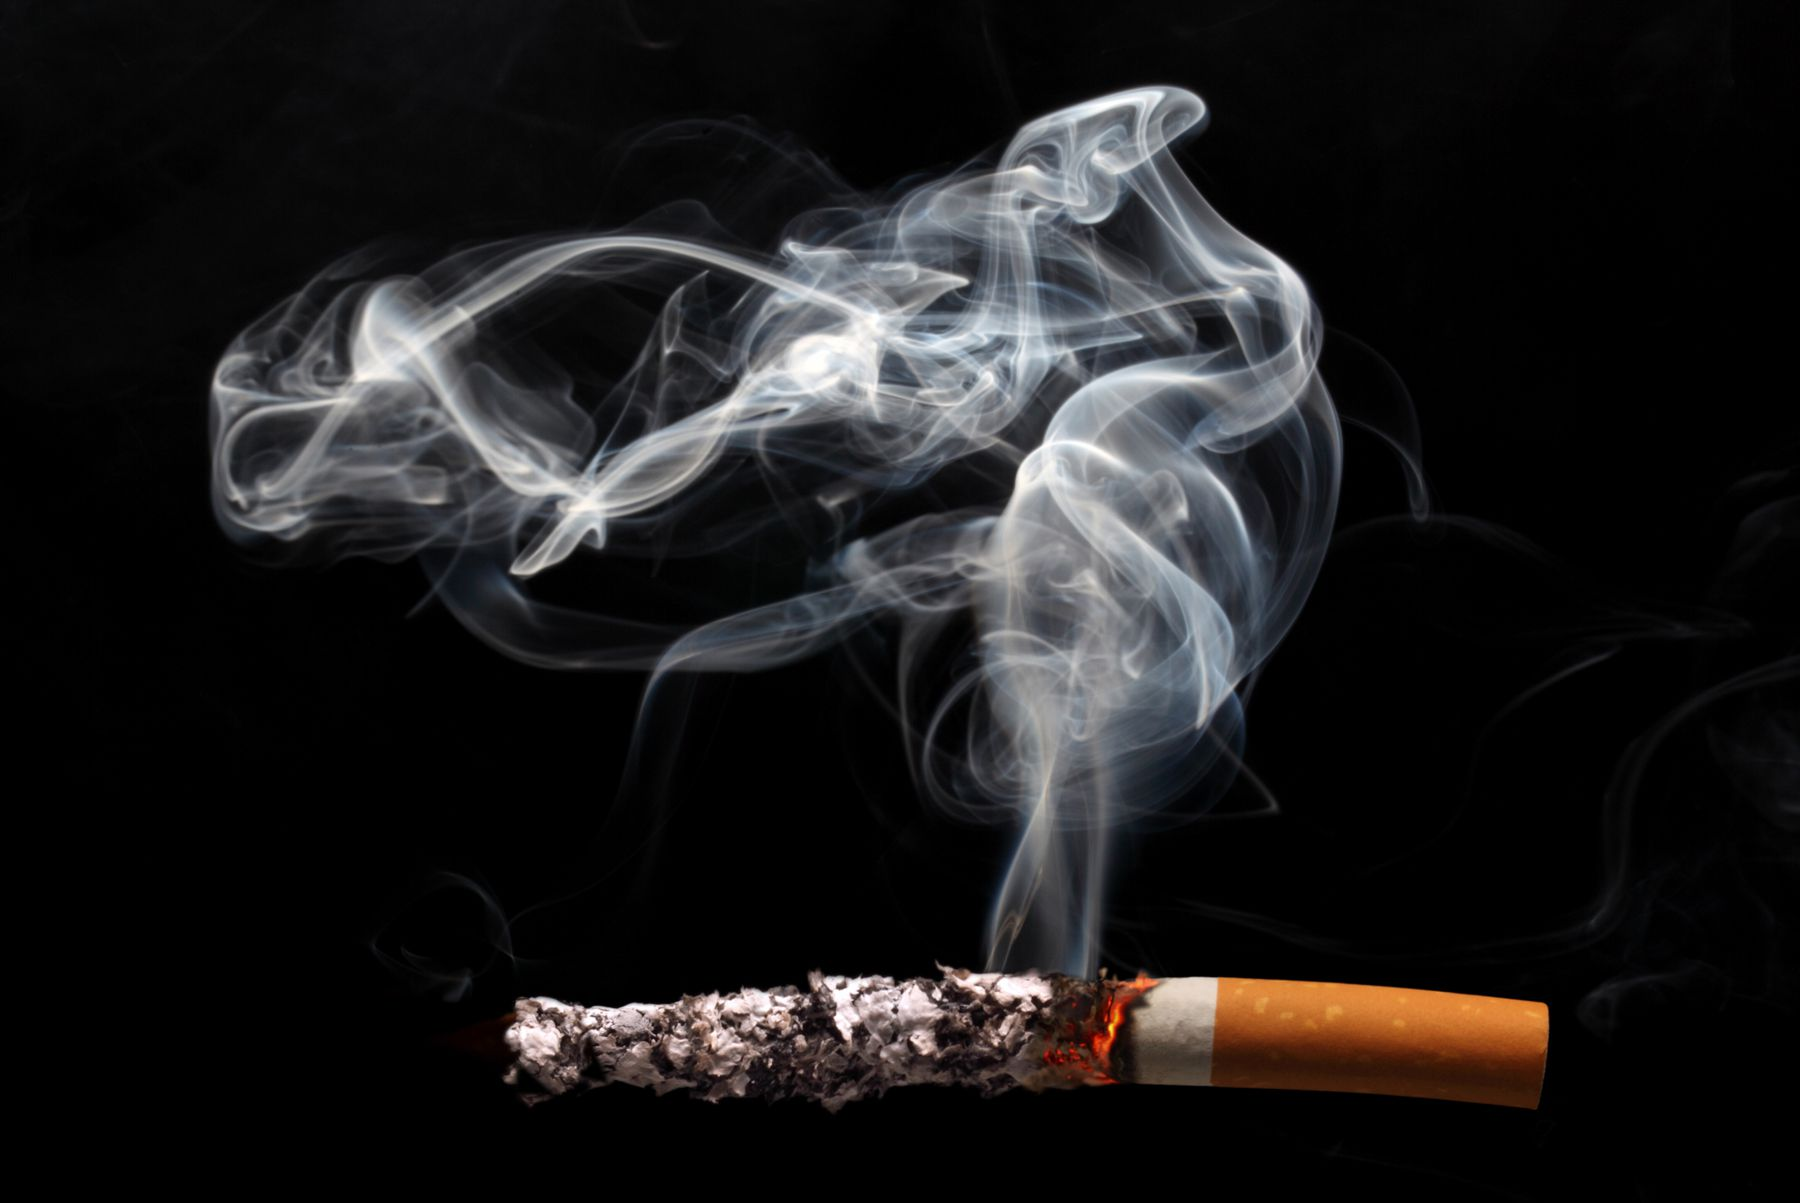 A Disturbing List Of Toxic Chemicals In Cigarettes